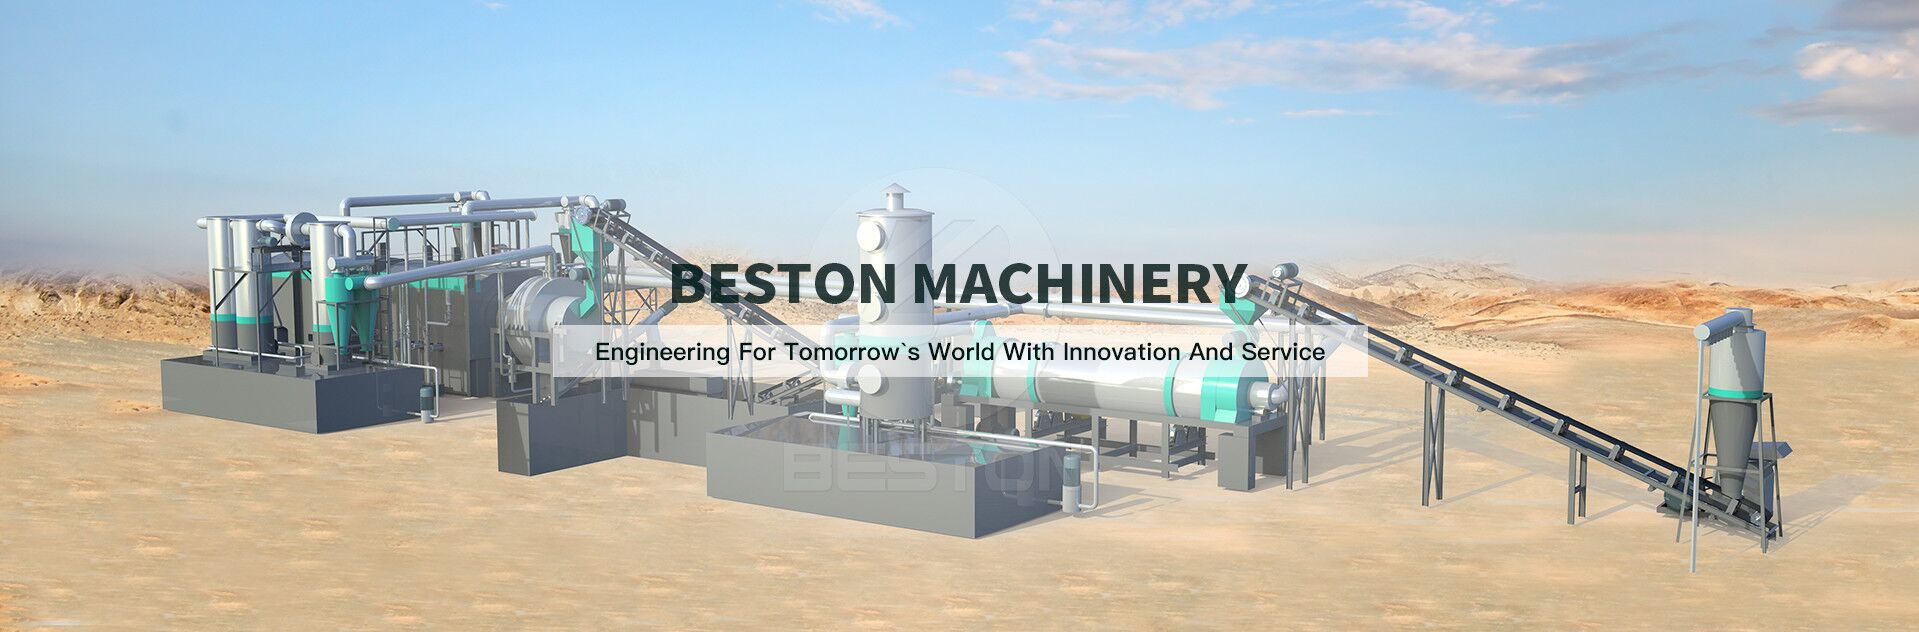 charcoal making machine banner